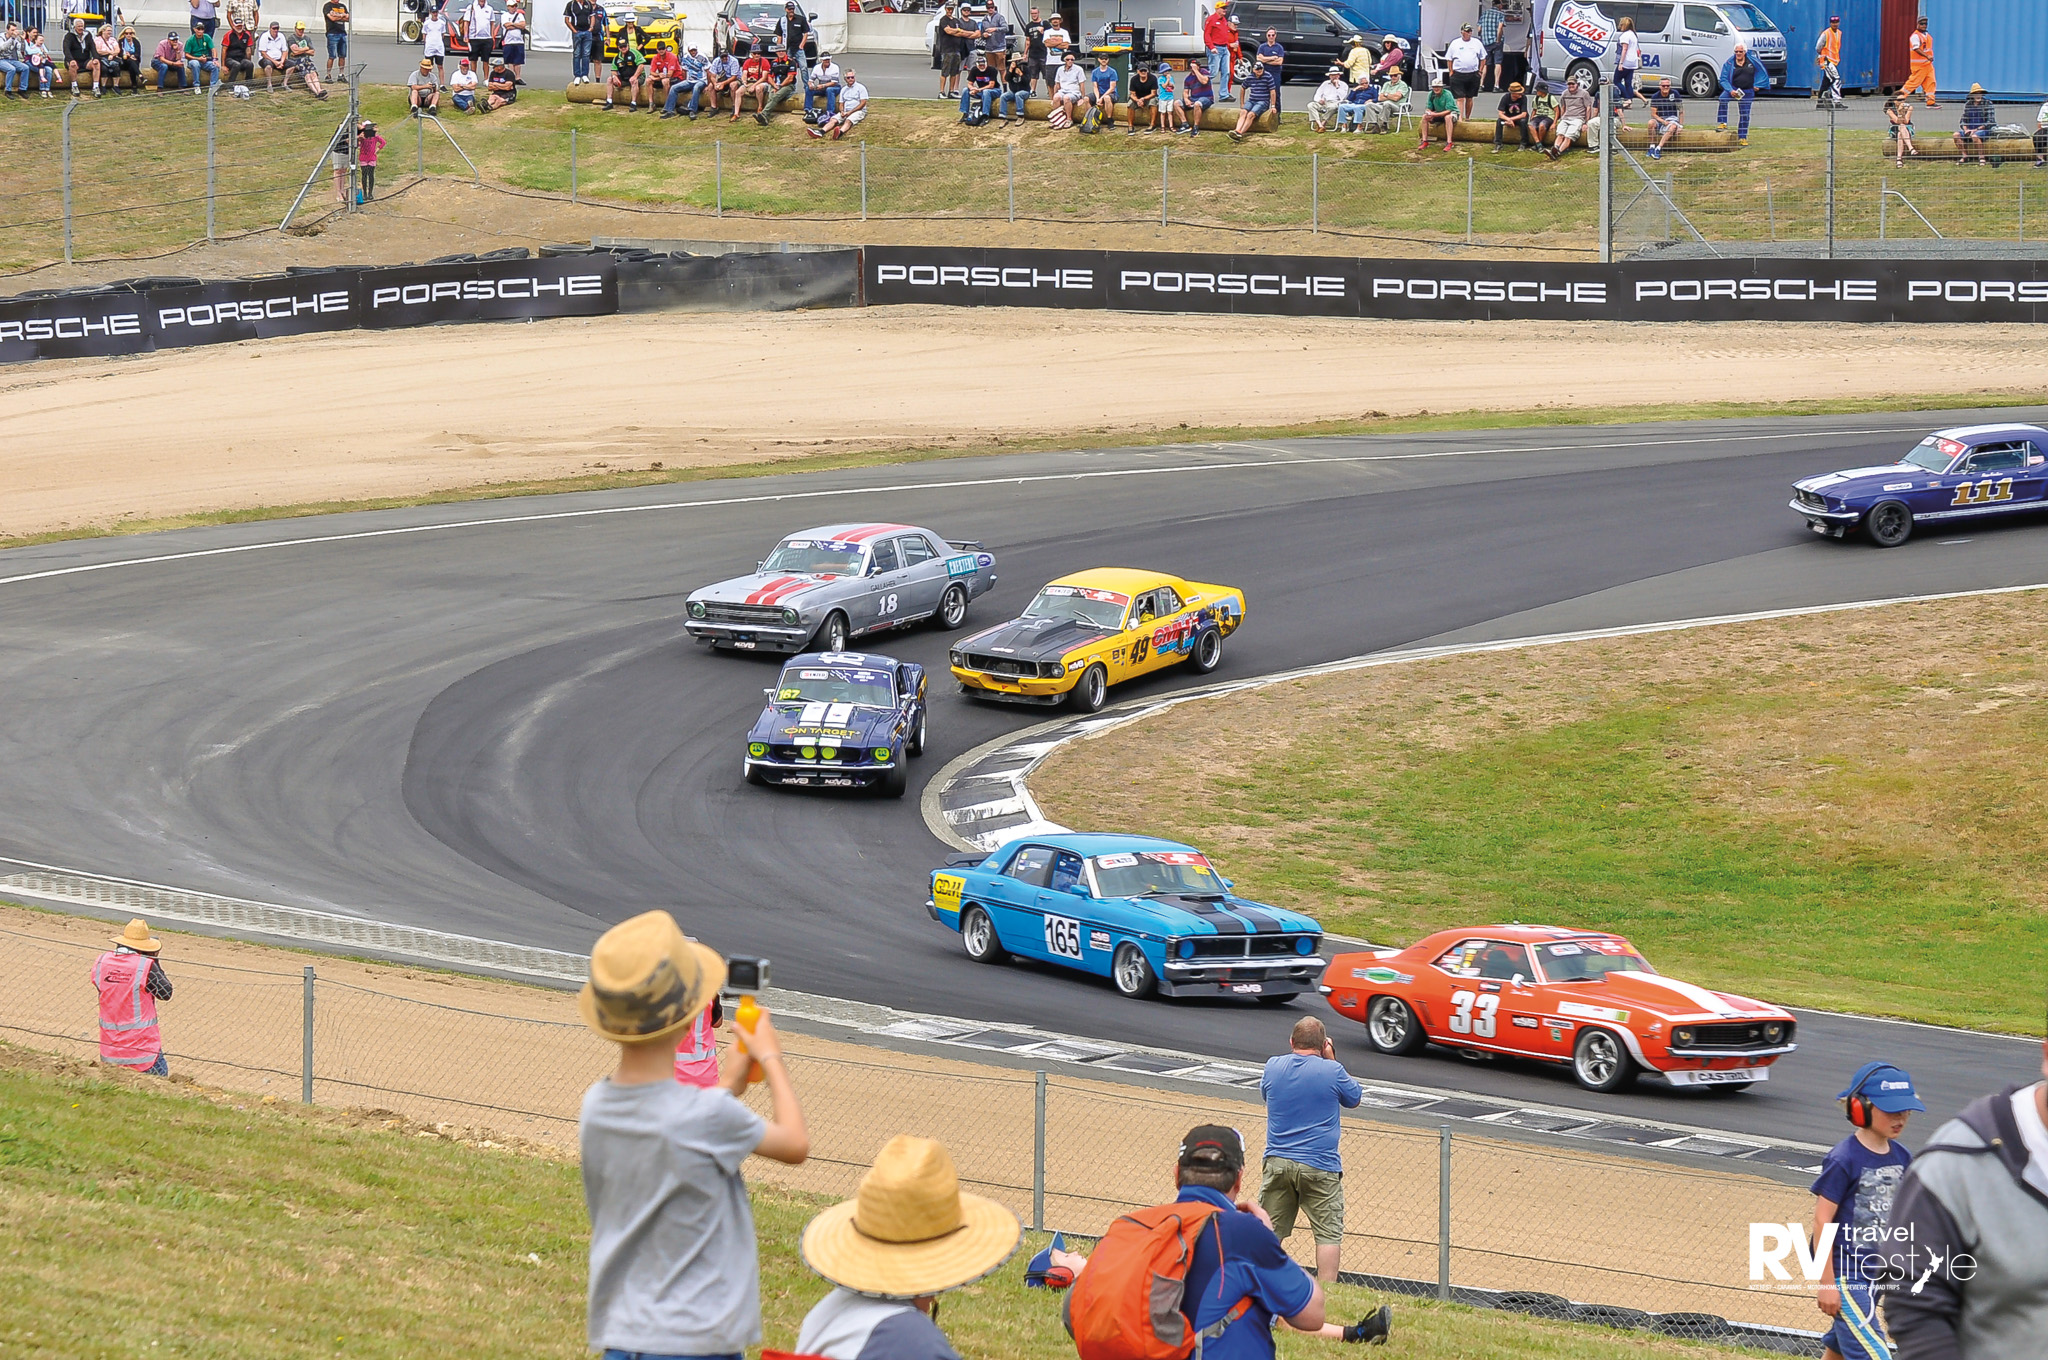 Hampton Downs raceway celebrated Ken Smith, an incredible gentleman who is over 70-years old and still wins championship races - hats off to you Ken